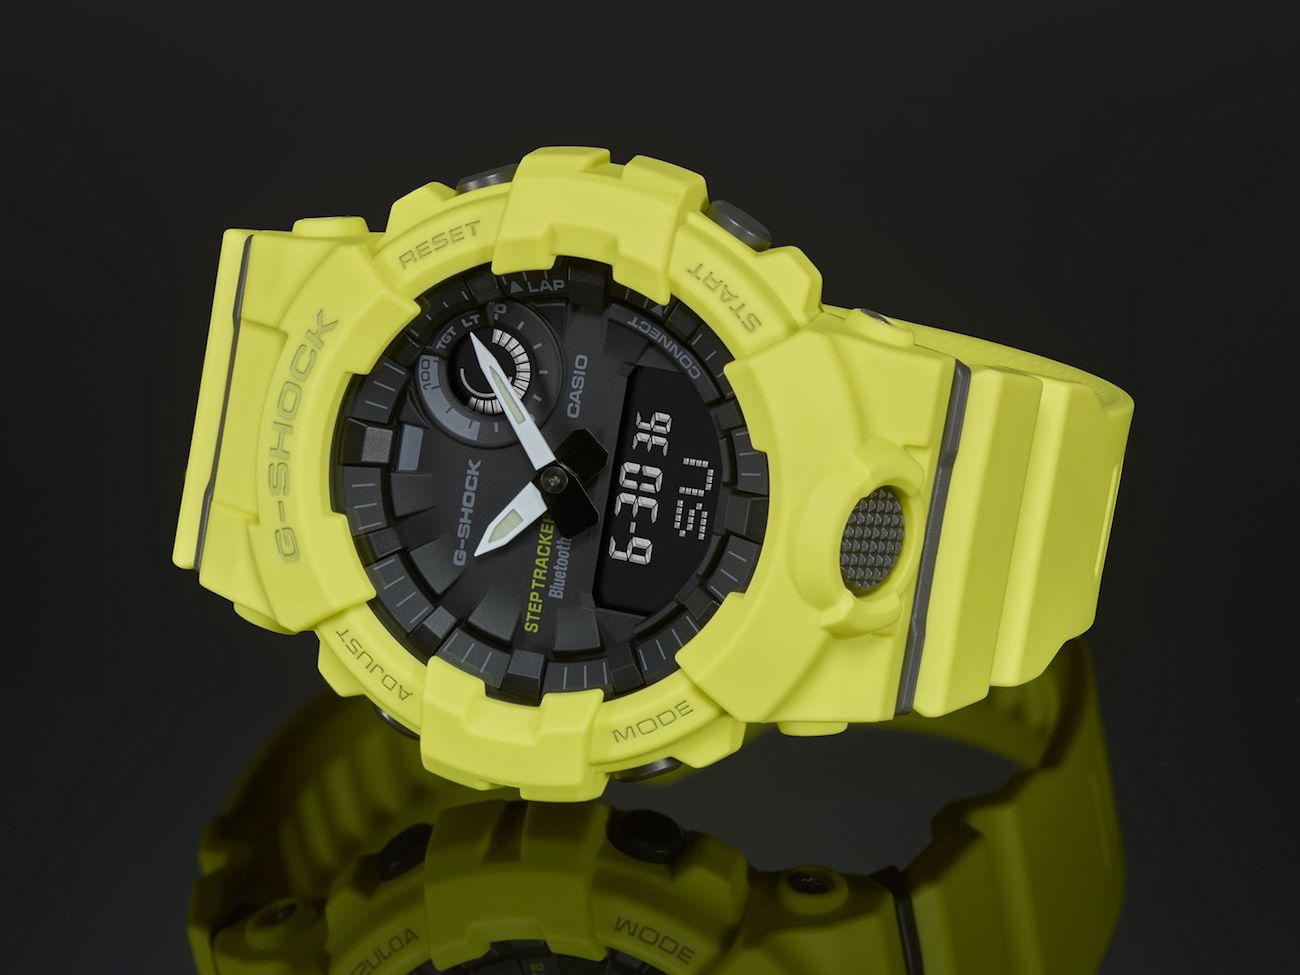 G-Squad+GBA-800+Shock+Resistant+Watch